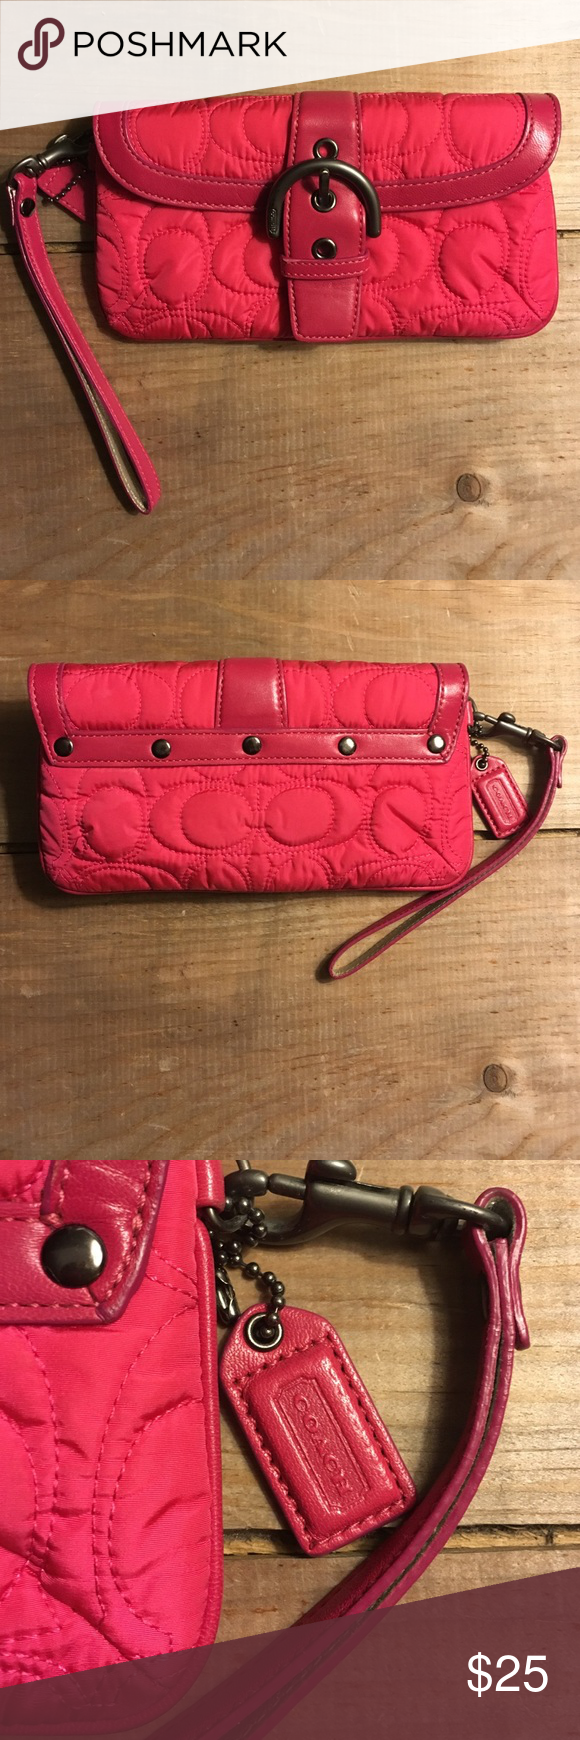 Pink COACH wristlet I love this thing! I've used it a few times but most of the time it just sits in my closet. No cosmetic flaws! Like new! Coach Bags Clutches & Wristlets